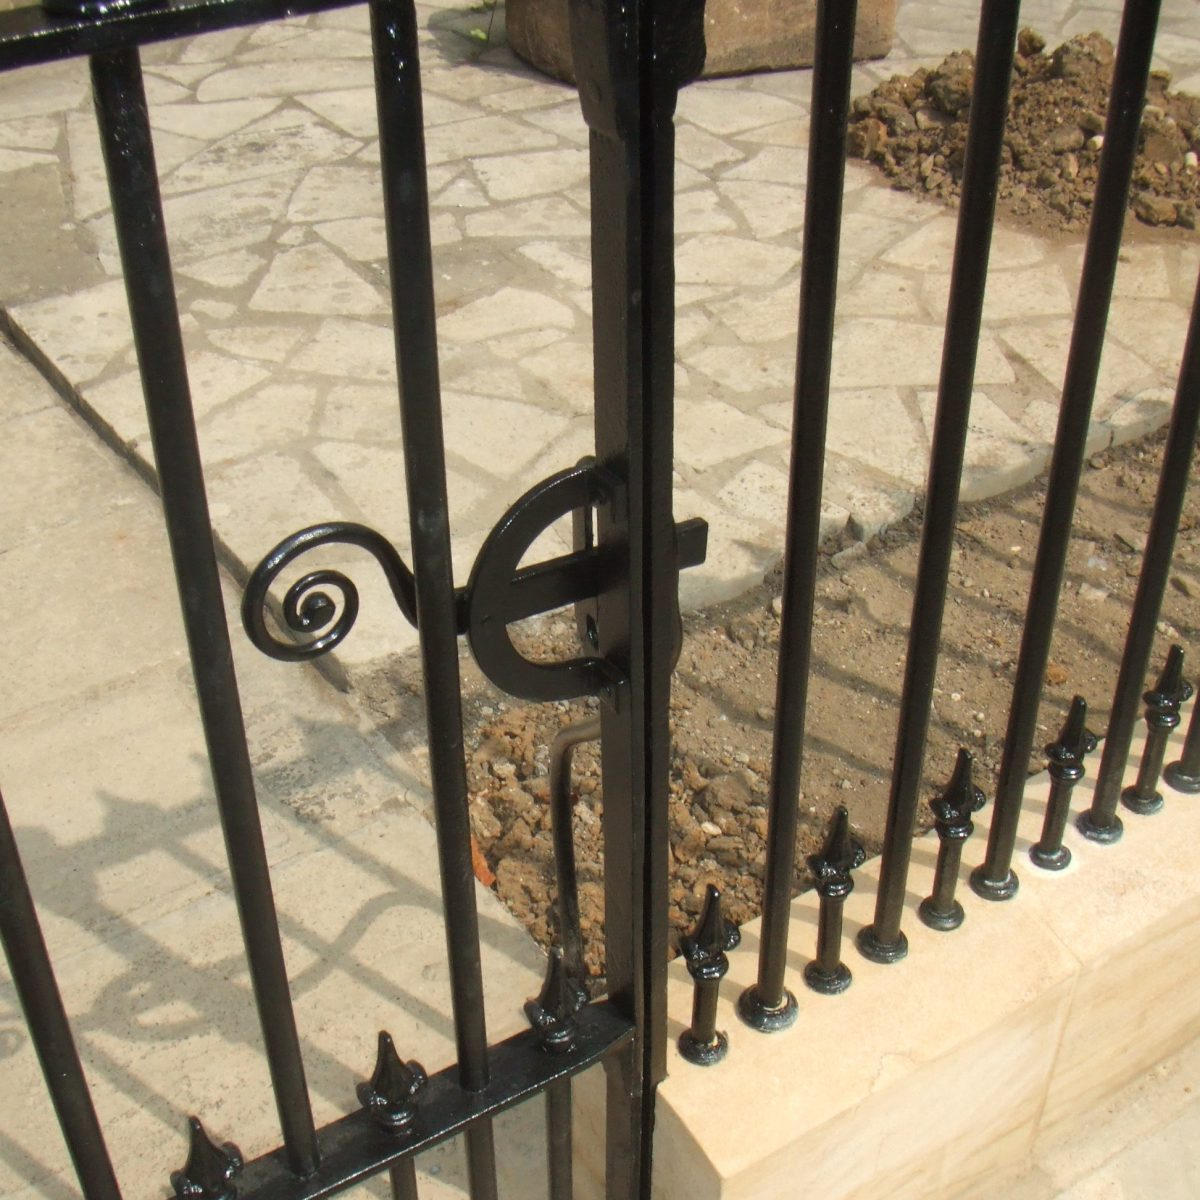 Traditional Ironwork Railings & Gate